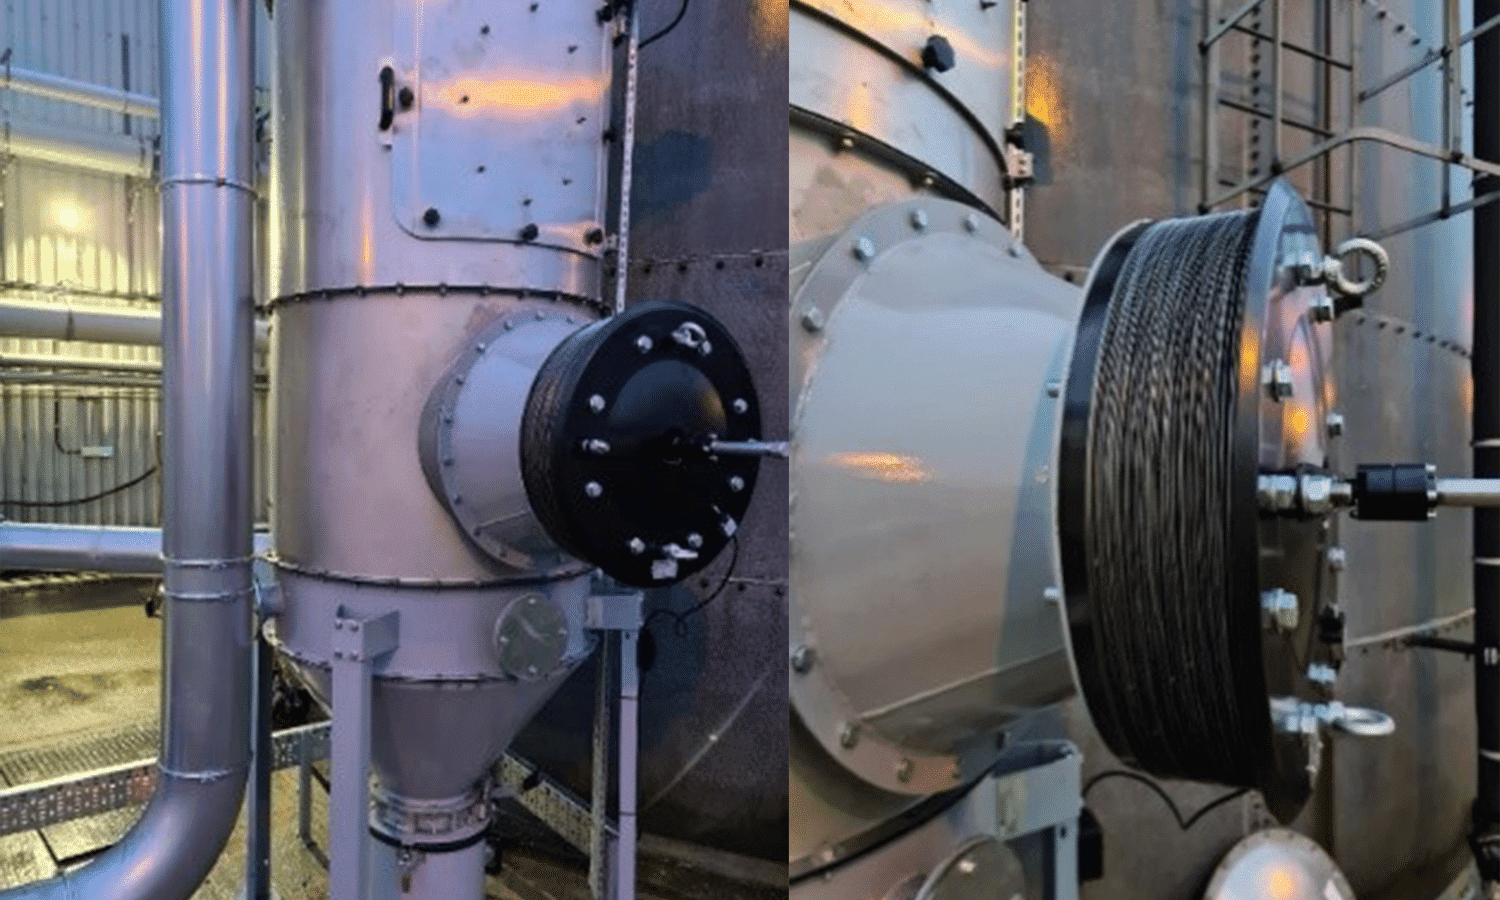 Flameless Venting - BulkInside - Explosion Protection & Process Safety